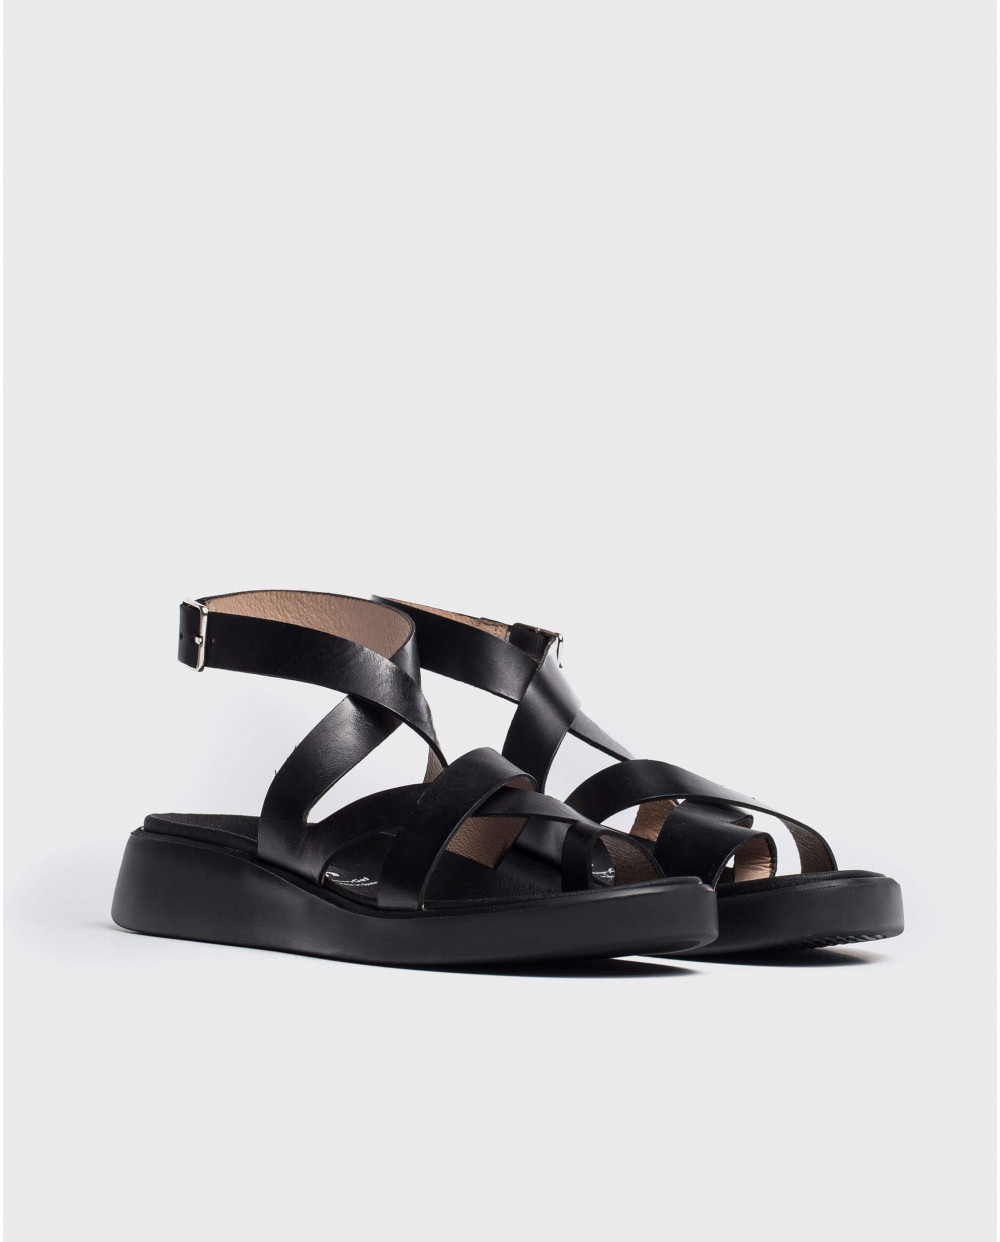 Wonders-Sandals-Leather toe post sandal